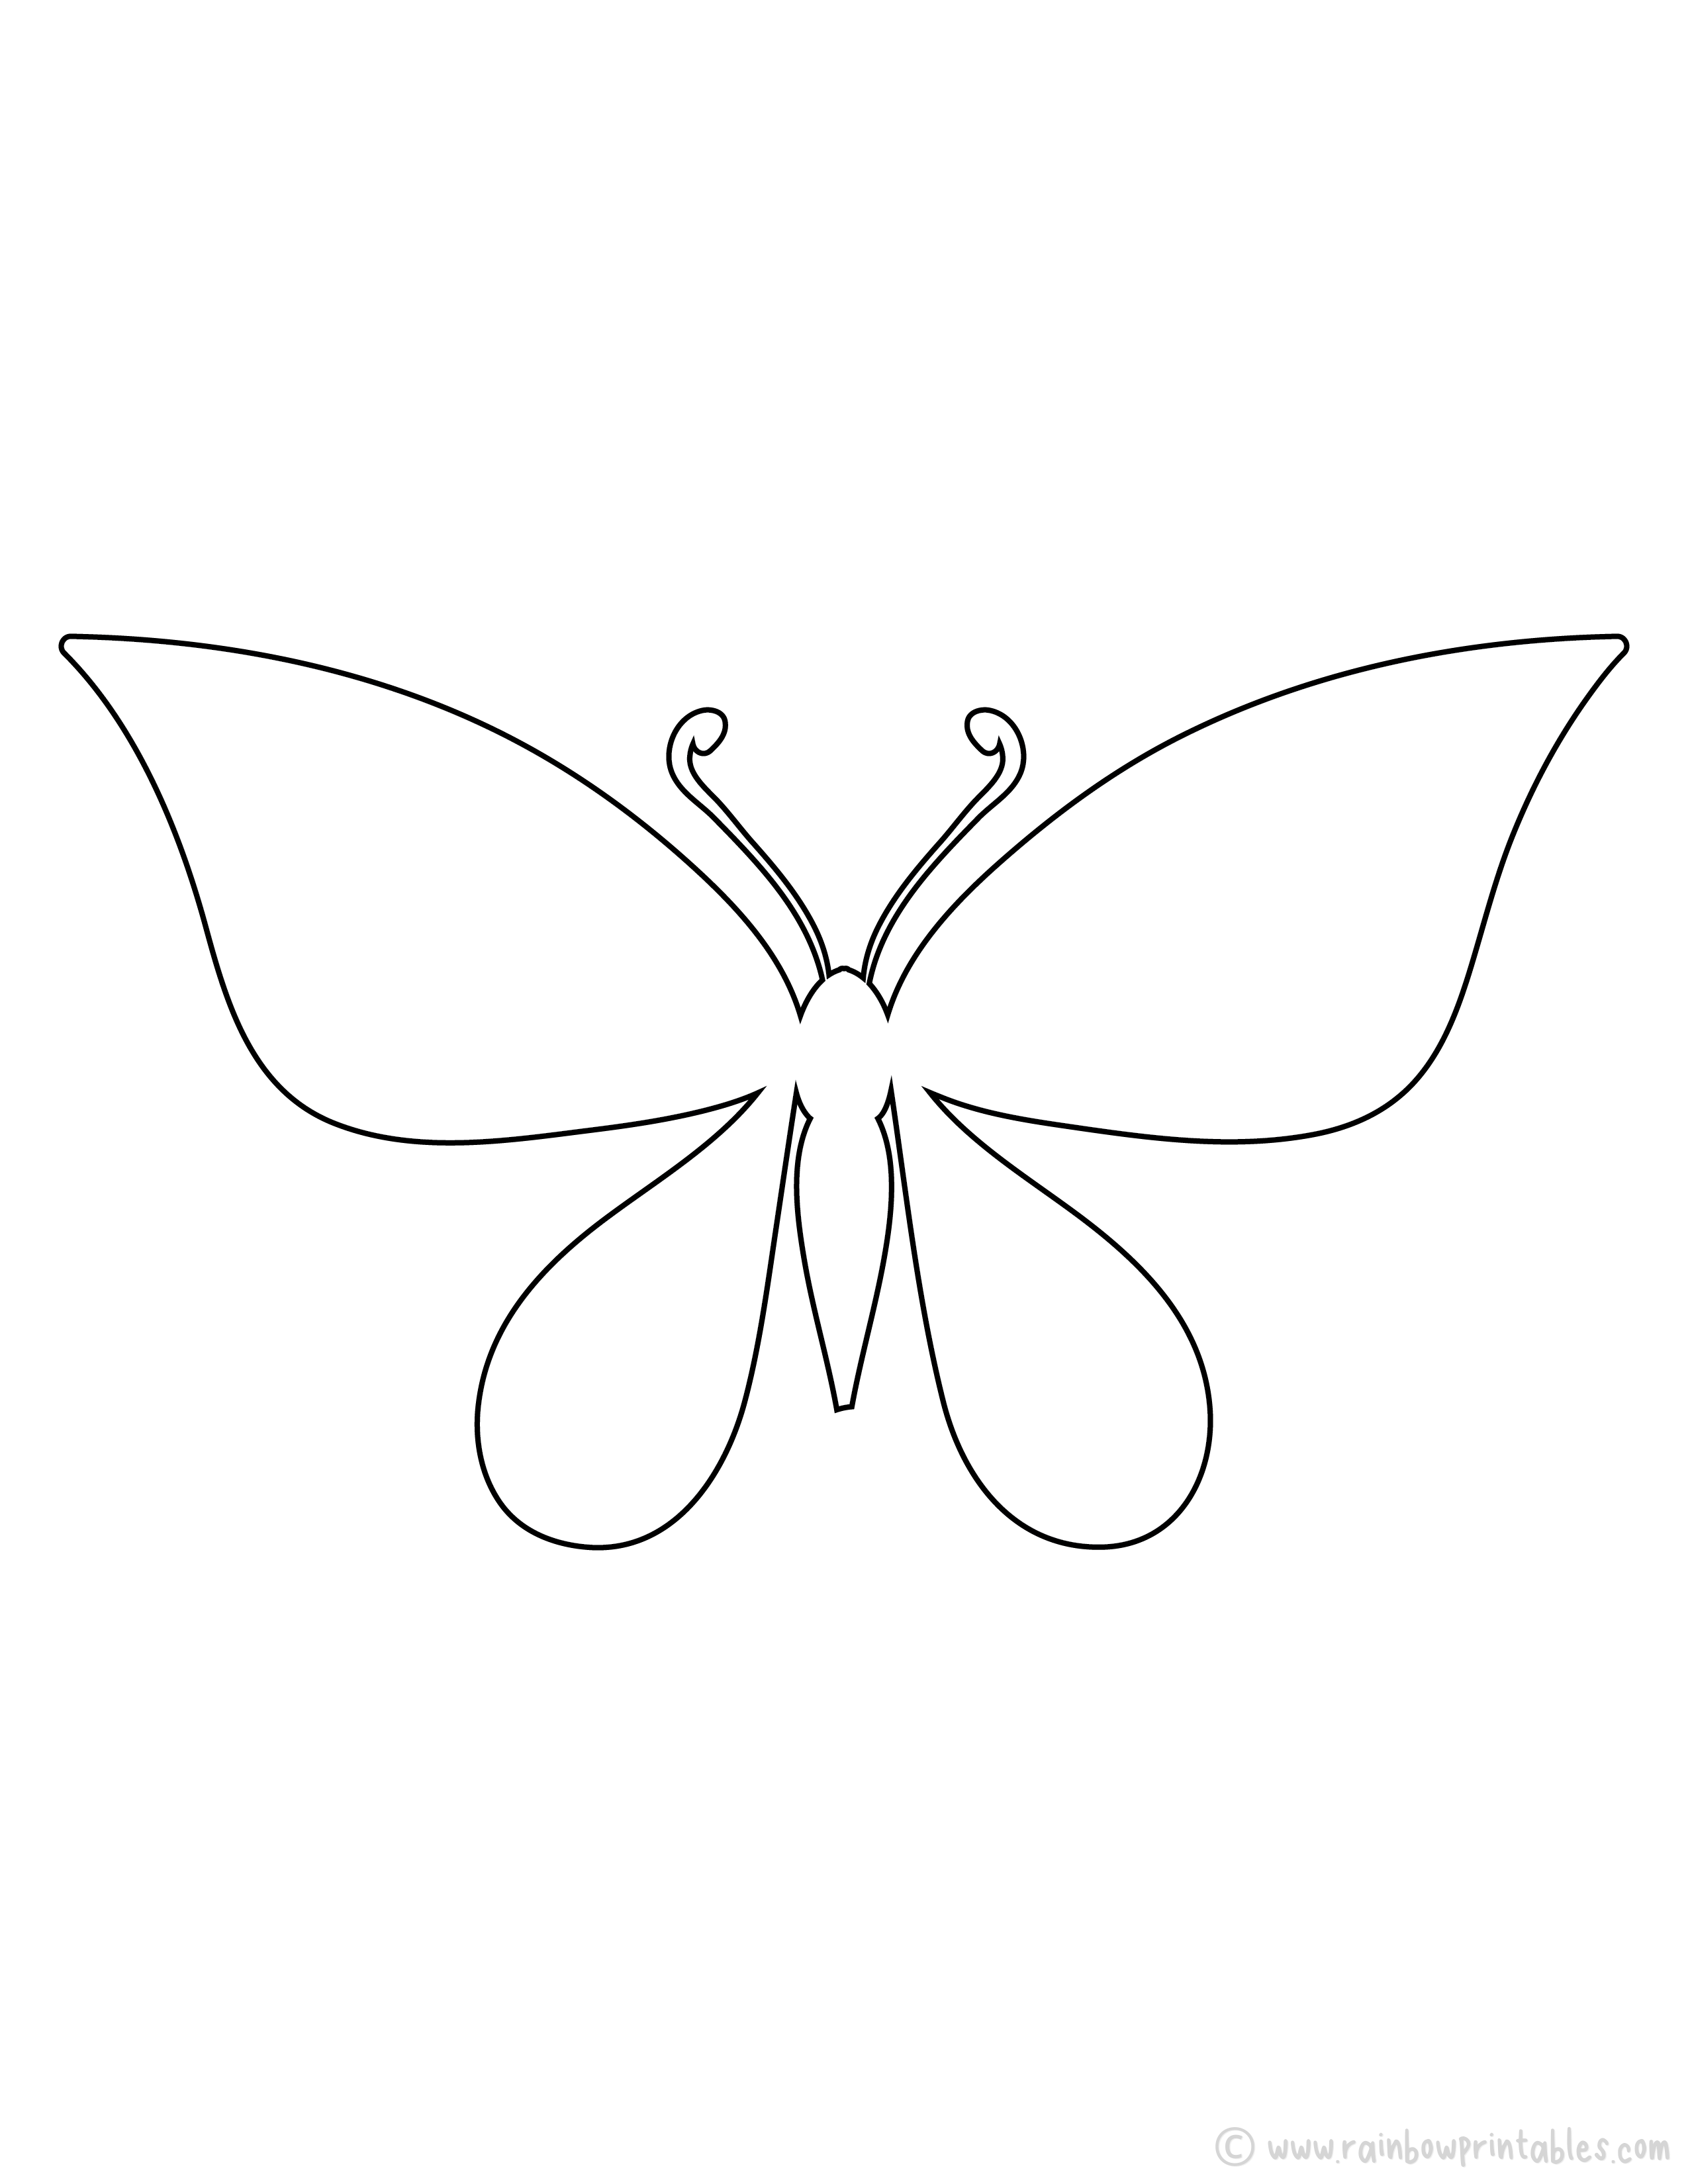 15 Free Butterfly Outline Printable Pages for Kid's Arts & Crafts Projects